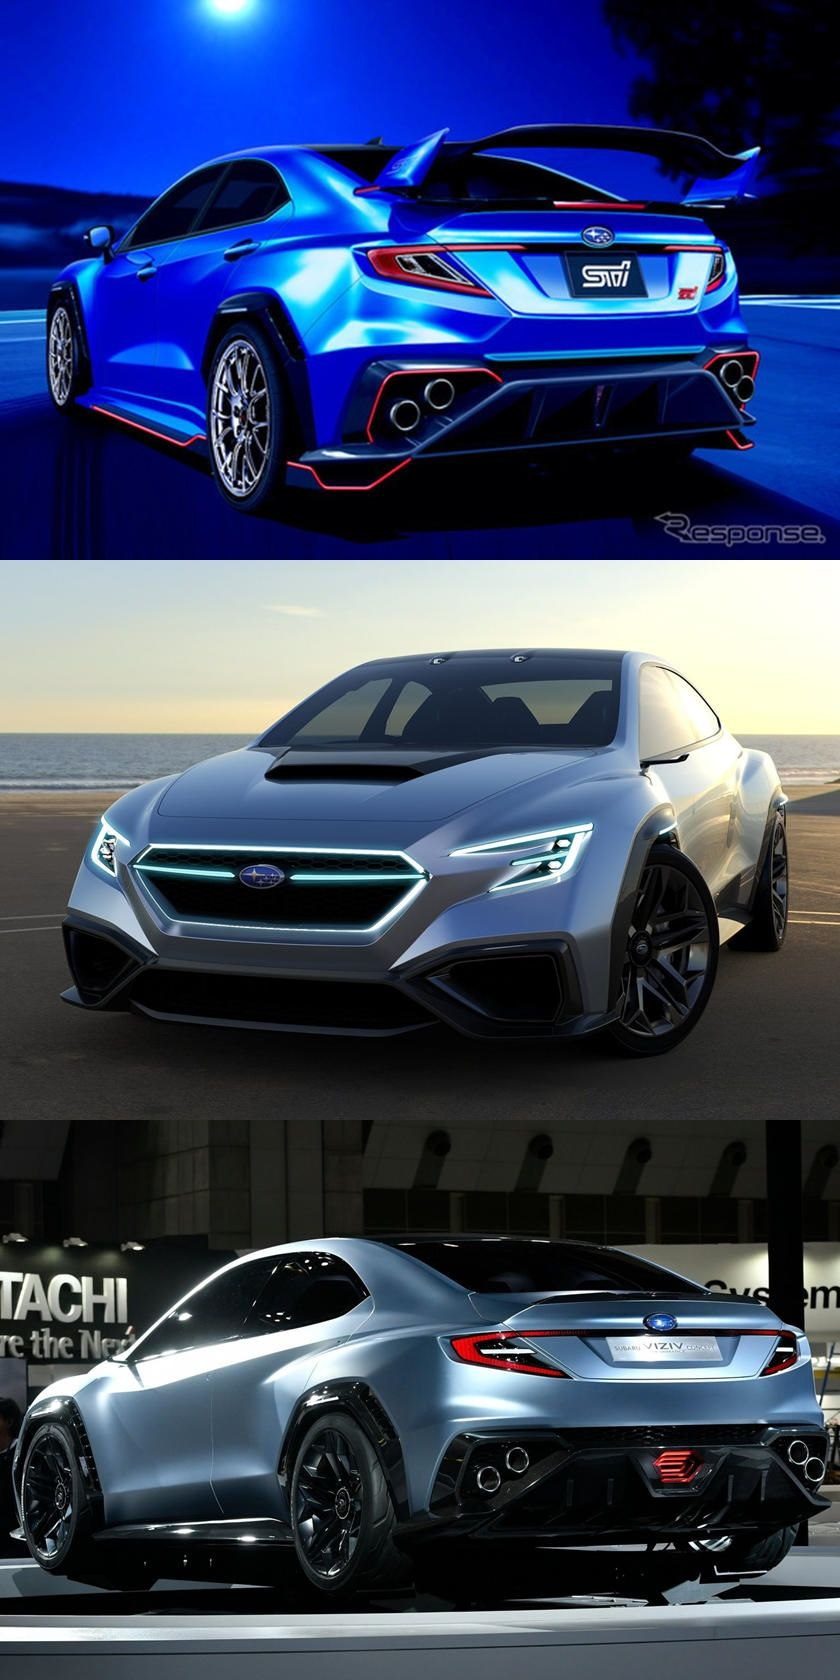 We Hope The New Subaru Wrx Sti Looks Like This Next Gen Model Is Going To Be Awesome In 2020 Subaru Wrx New Subaru Wrx Subaru Wrx Sti